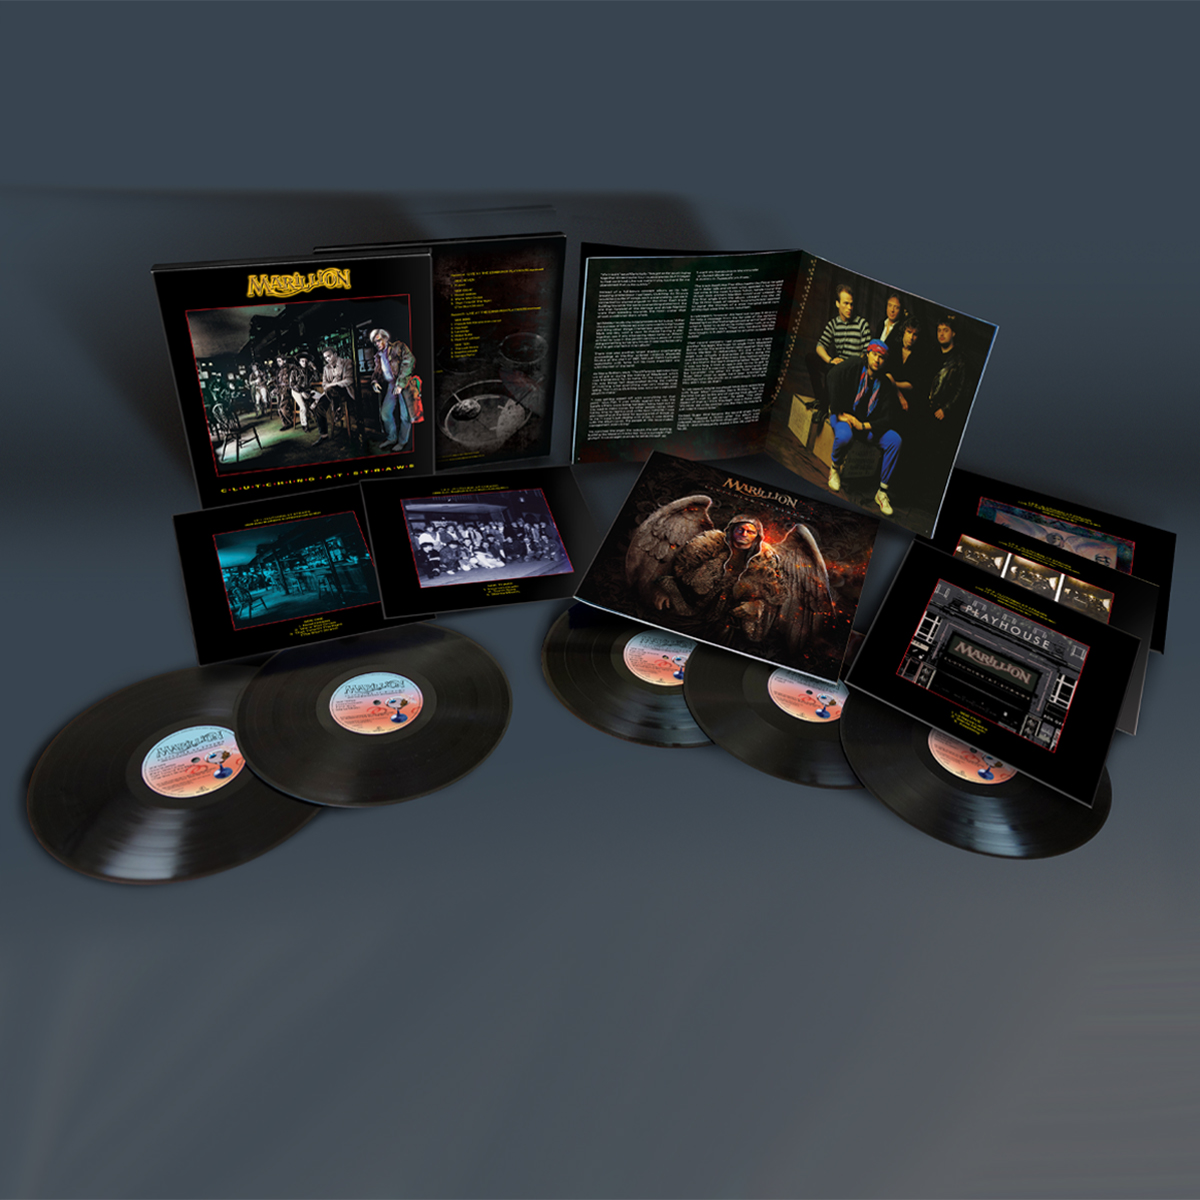 Clutching At Straws Deluxe Vinyl Box Set